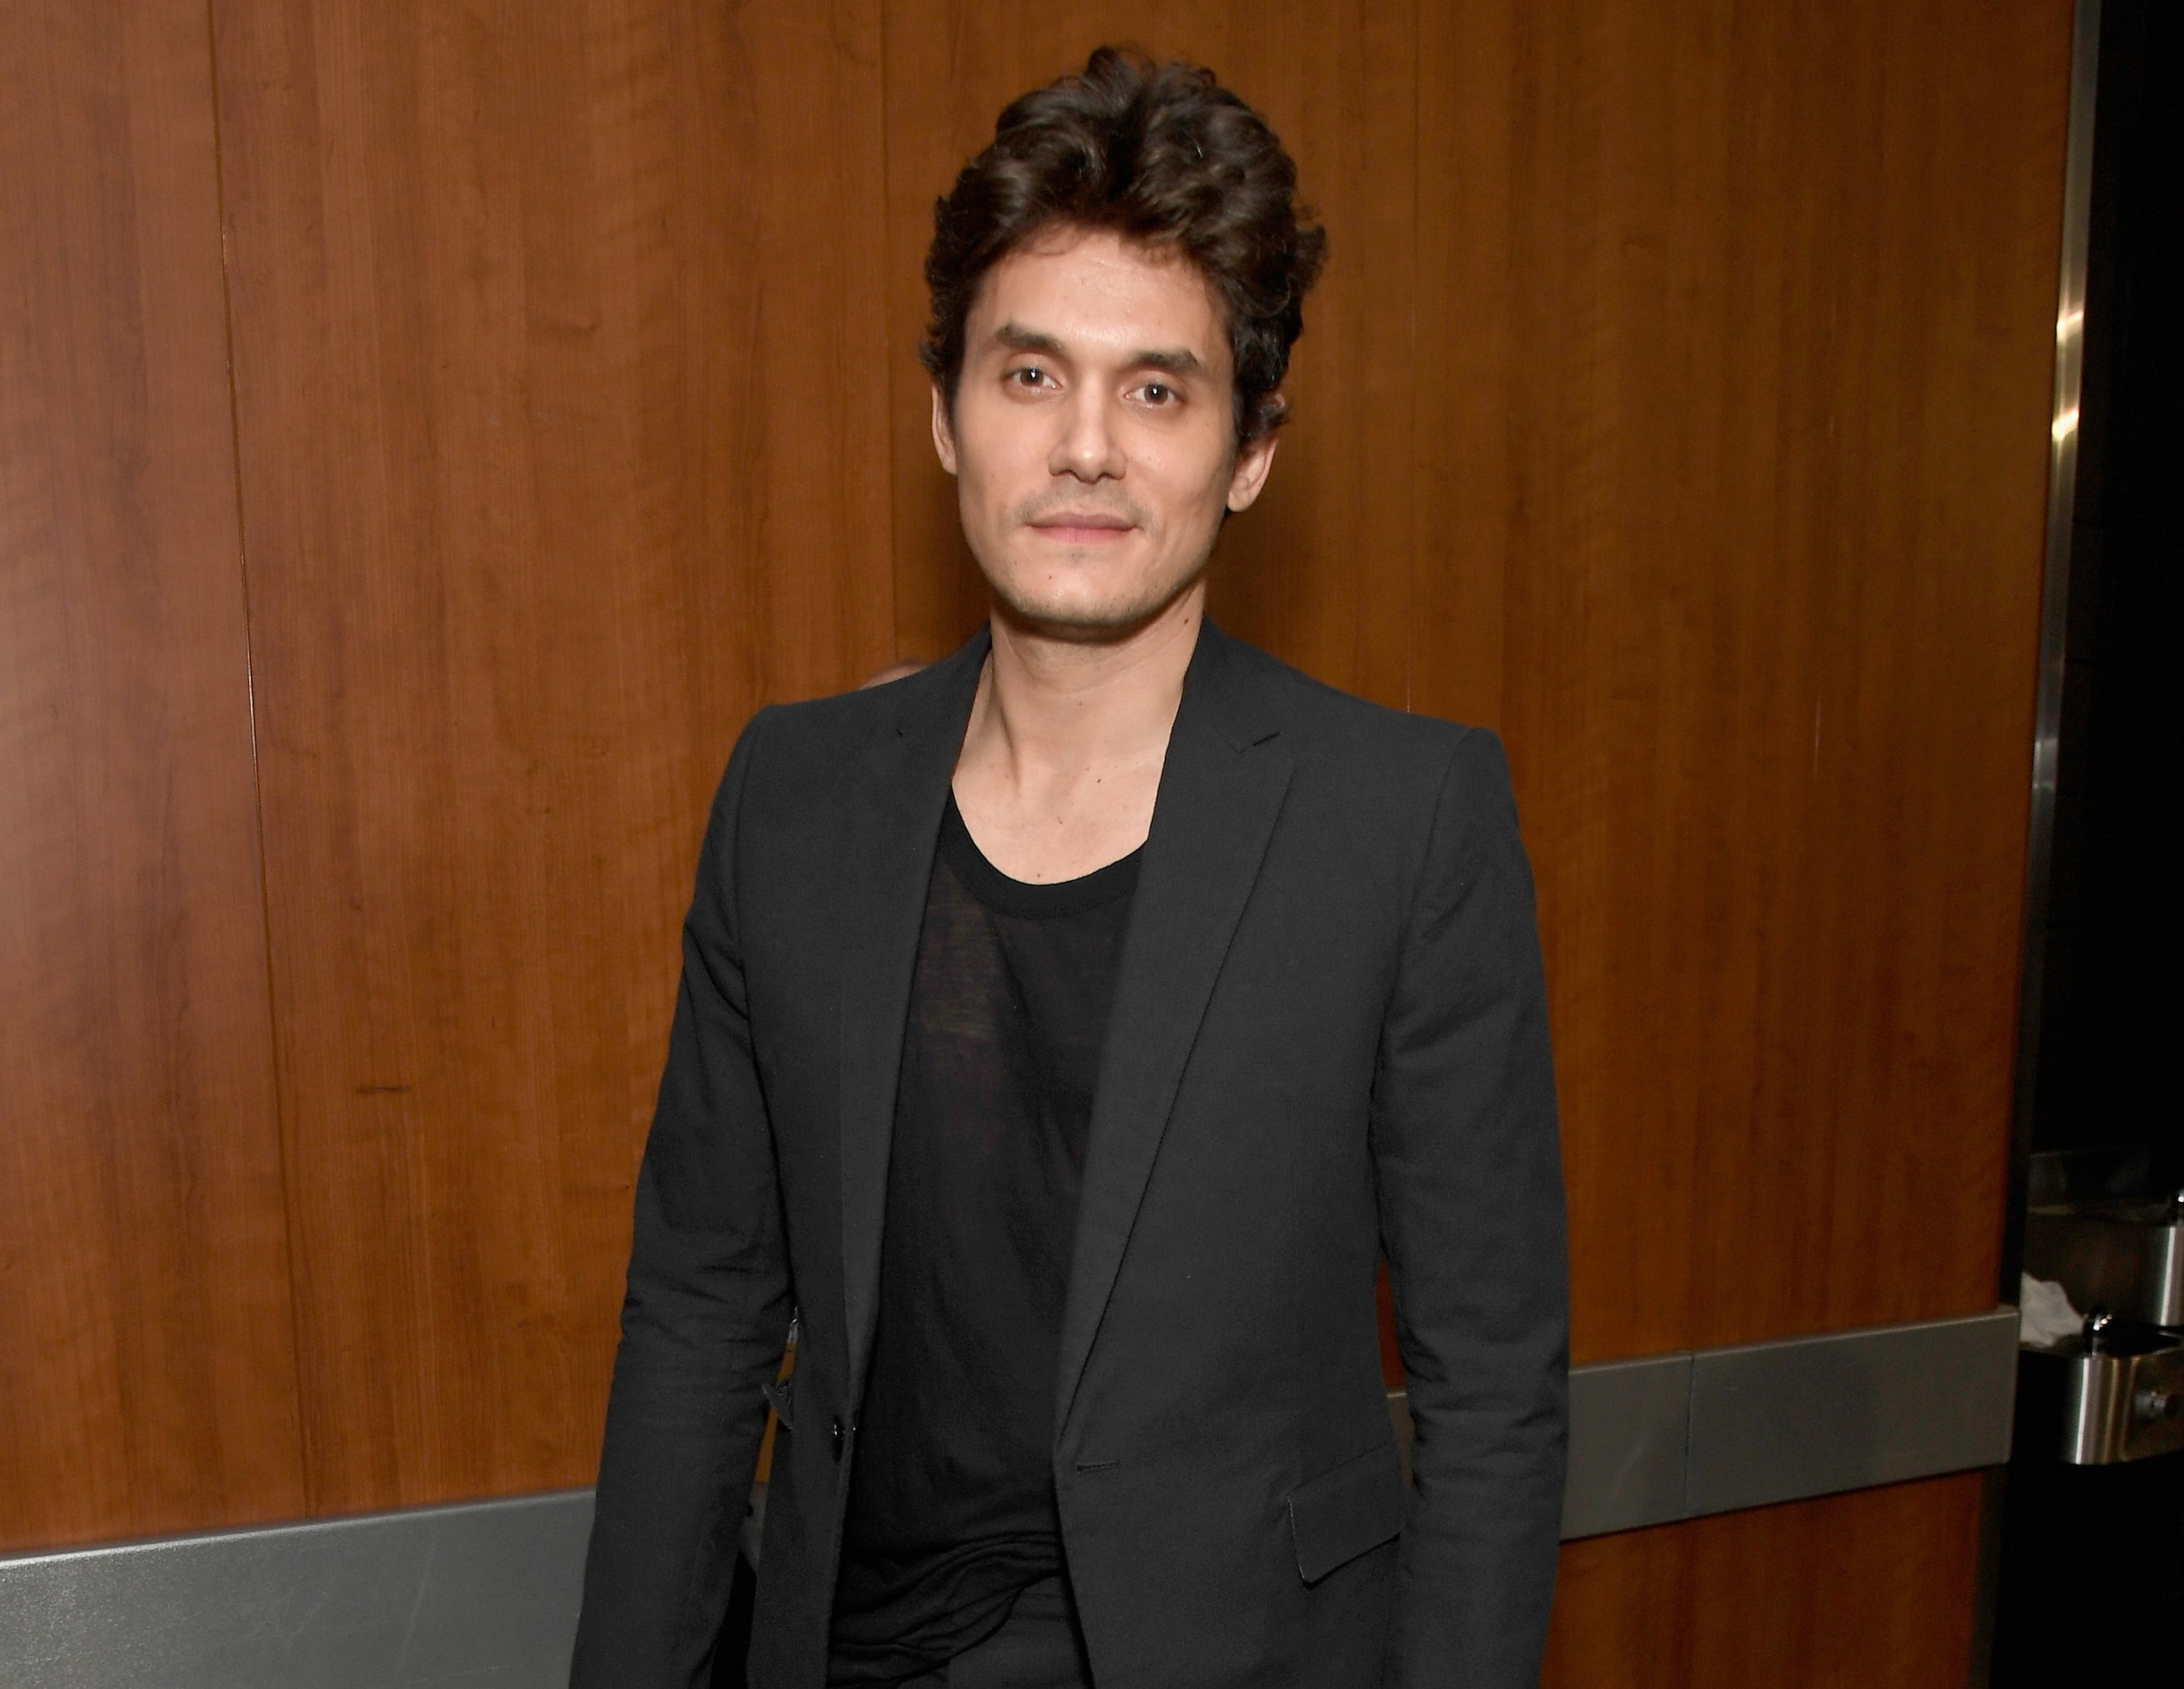 John wears a suit jacket to an event